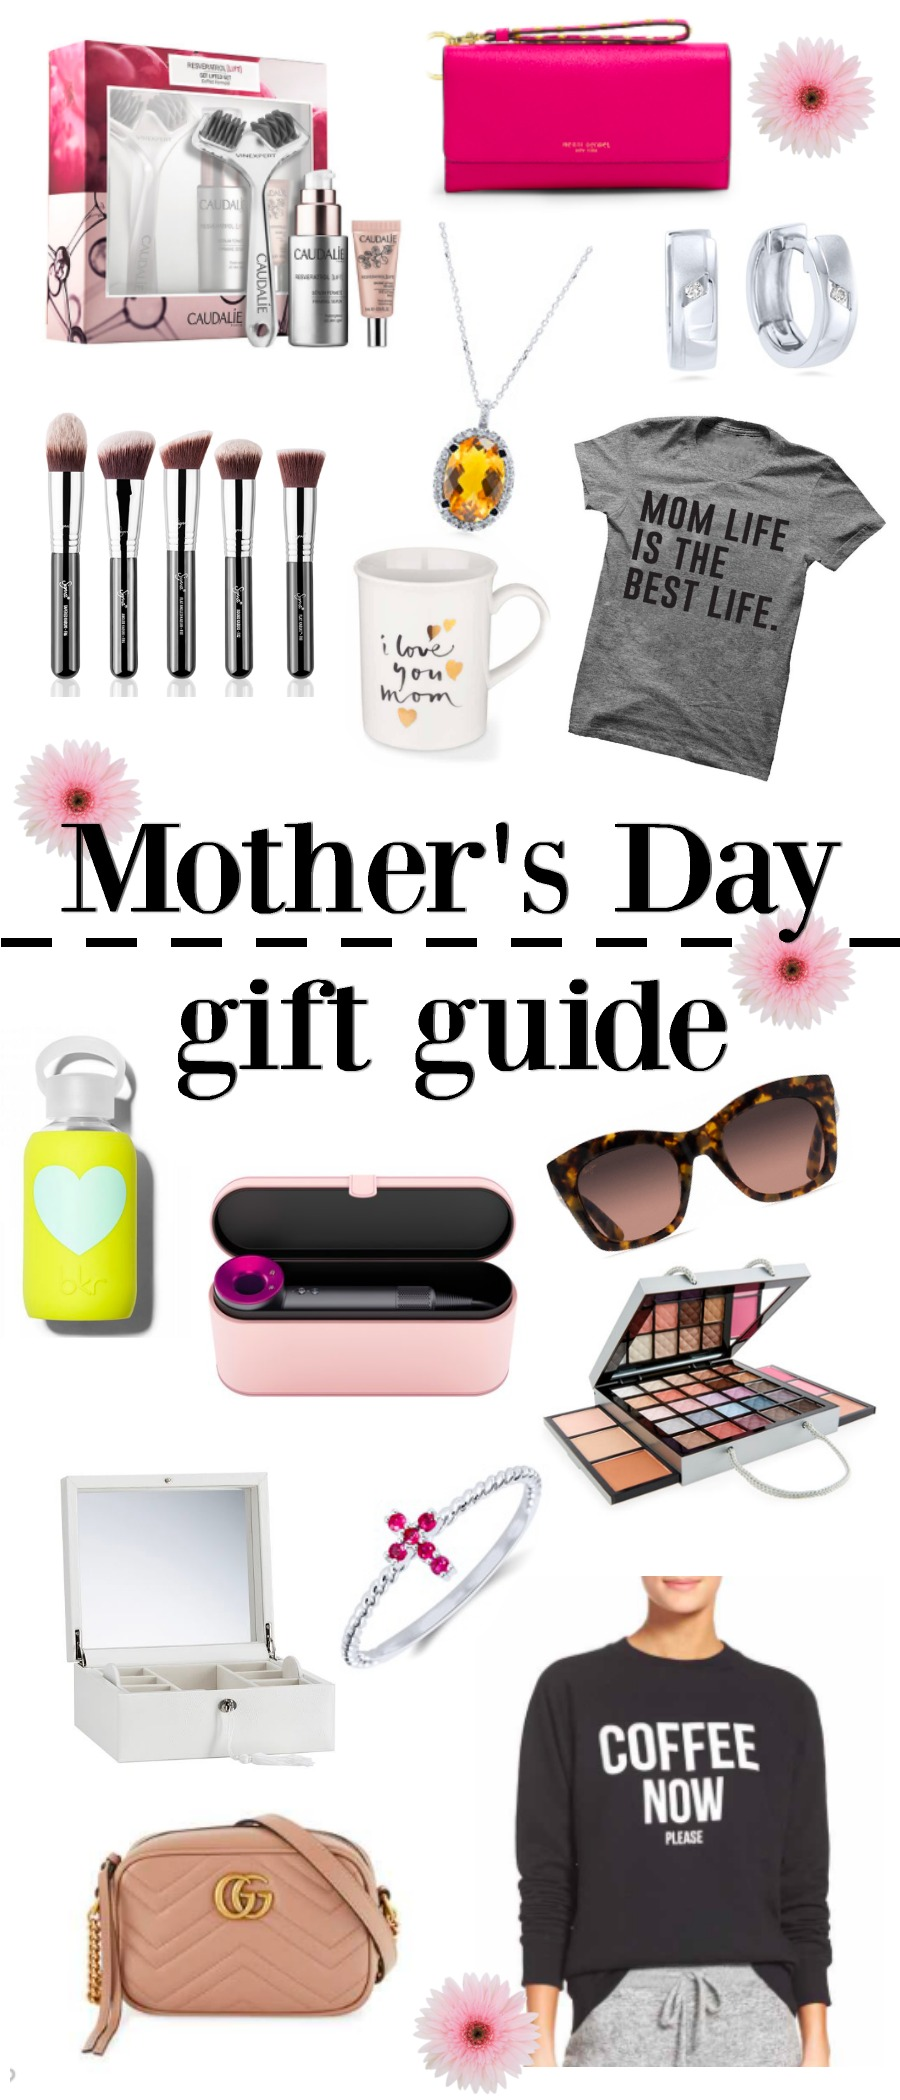 Mother's Day gift guide | Gift guide for her | Gift ideas for mom | Gift ideas for her | Uptown with Elly Brown